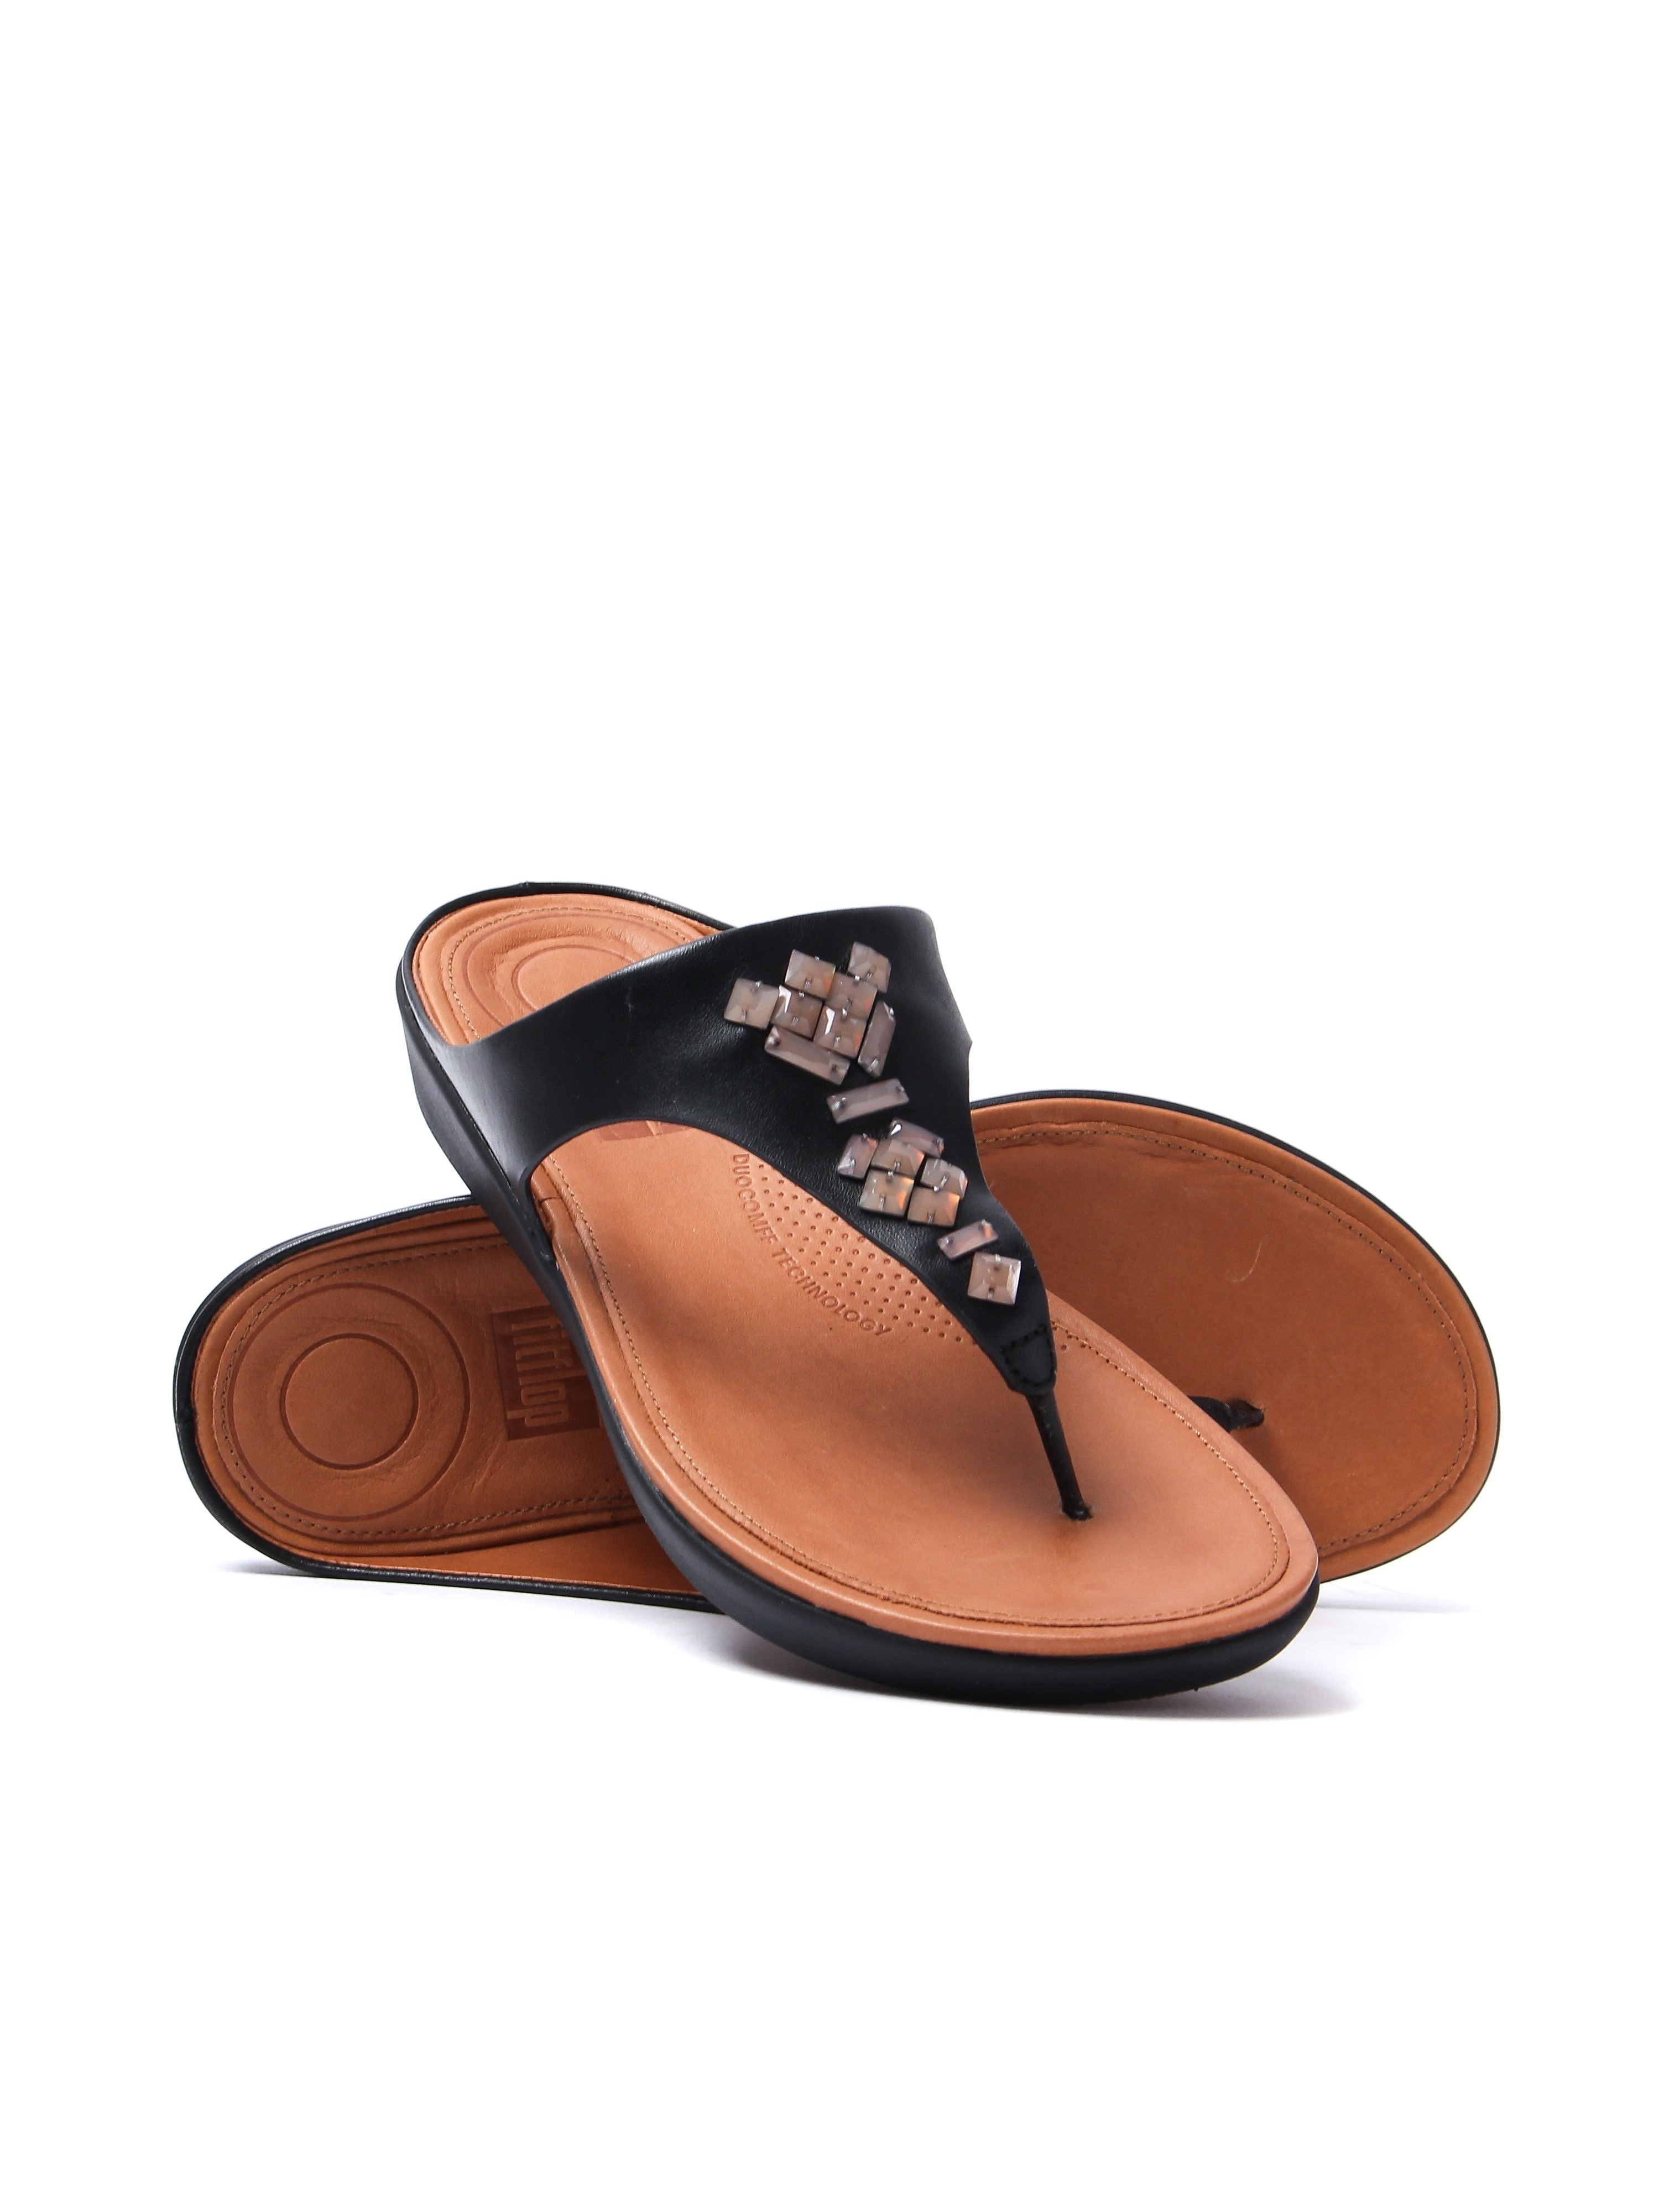 FitFlop Banda Crystal Leather Toe Thong Sandals - Black